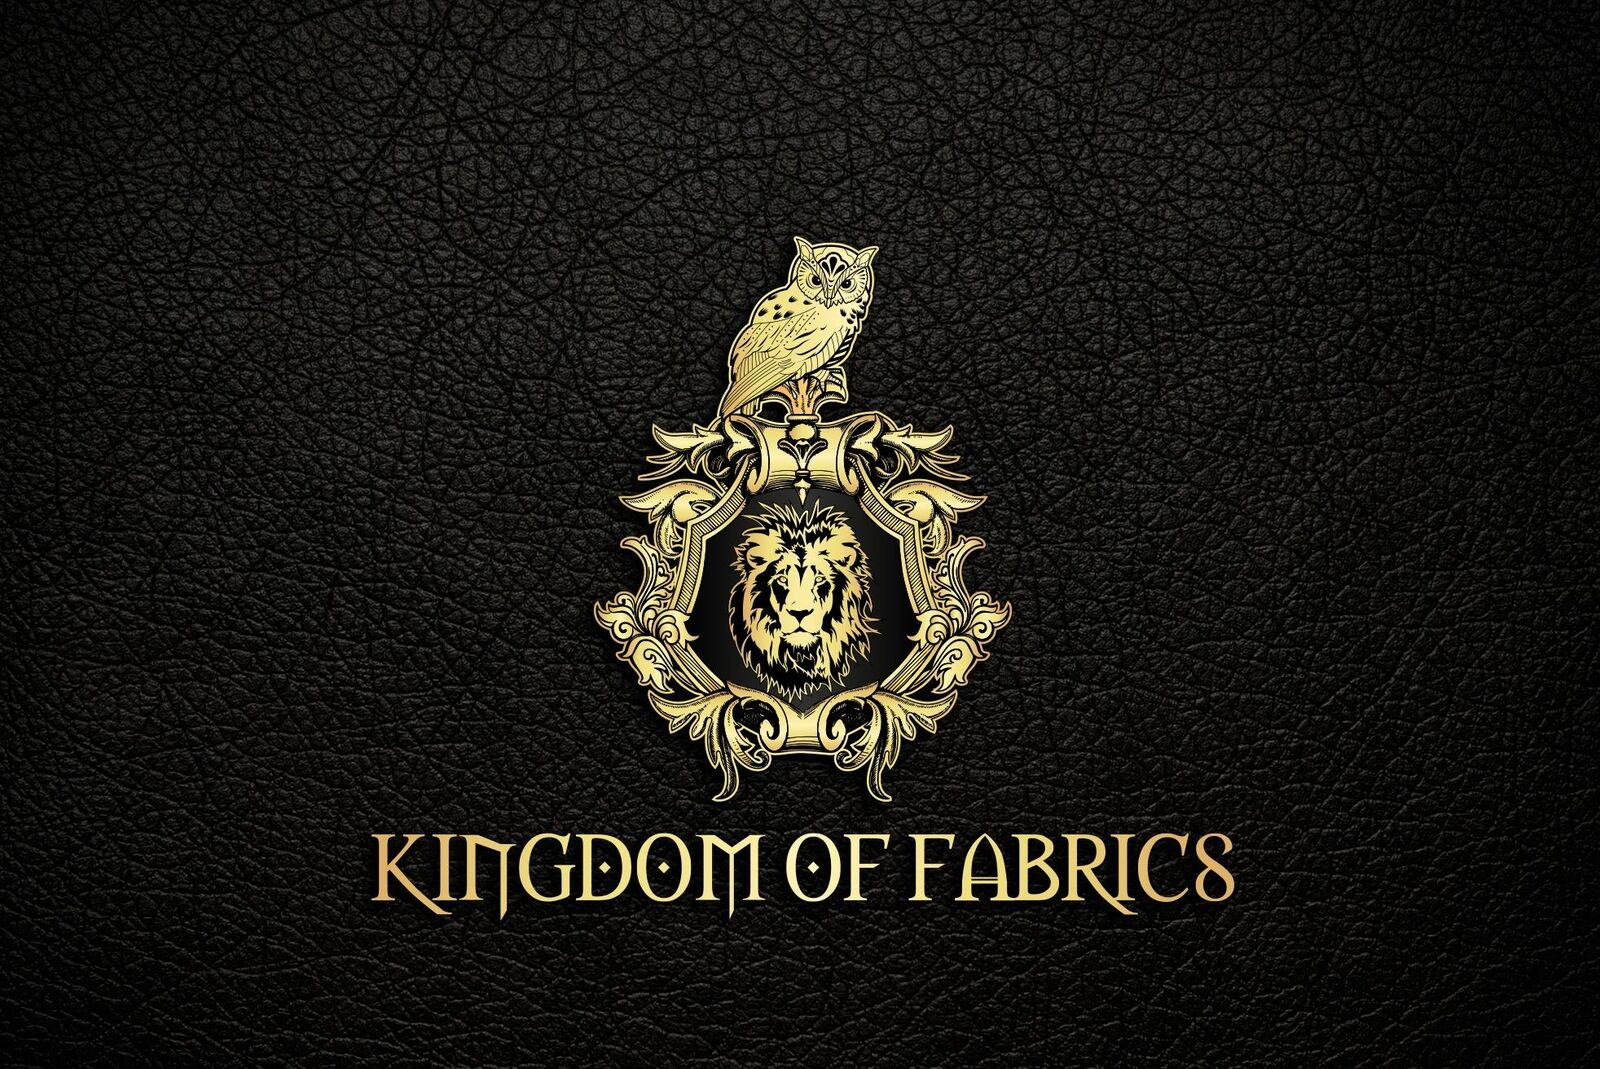 kingdomoffabrics